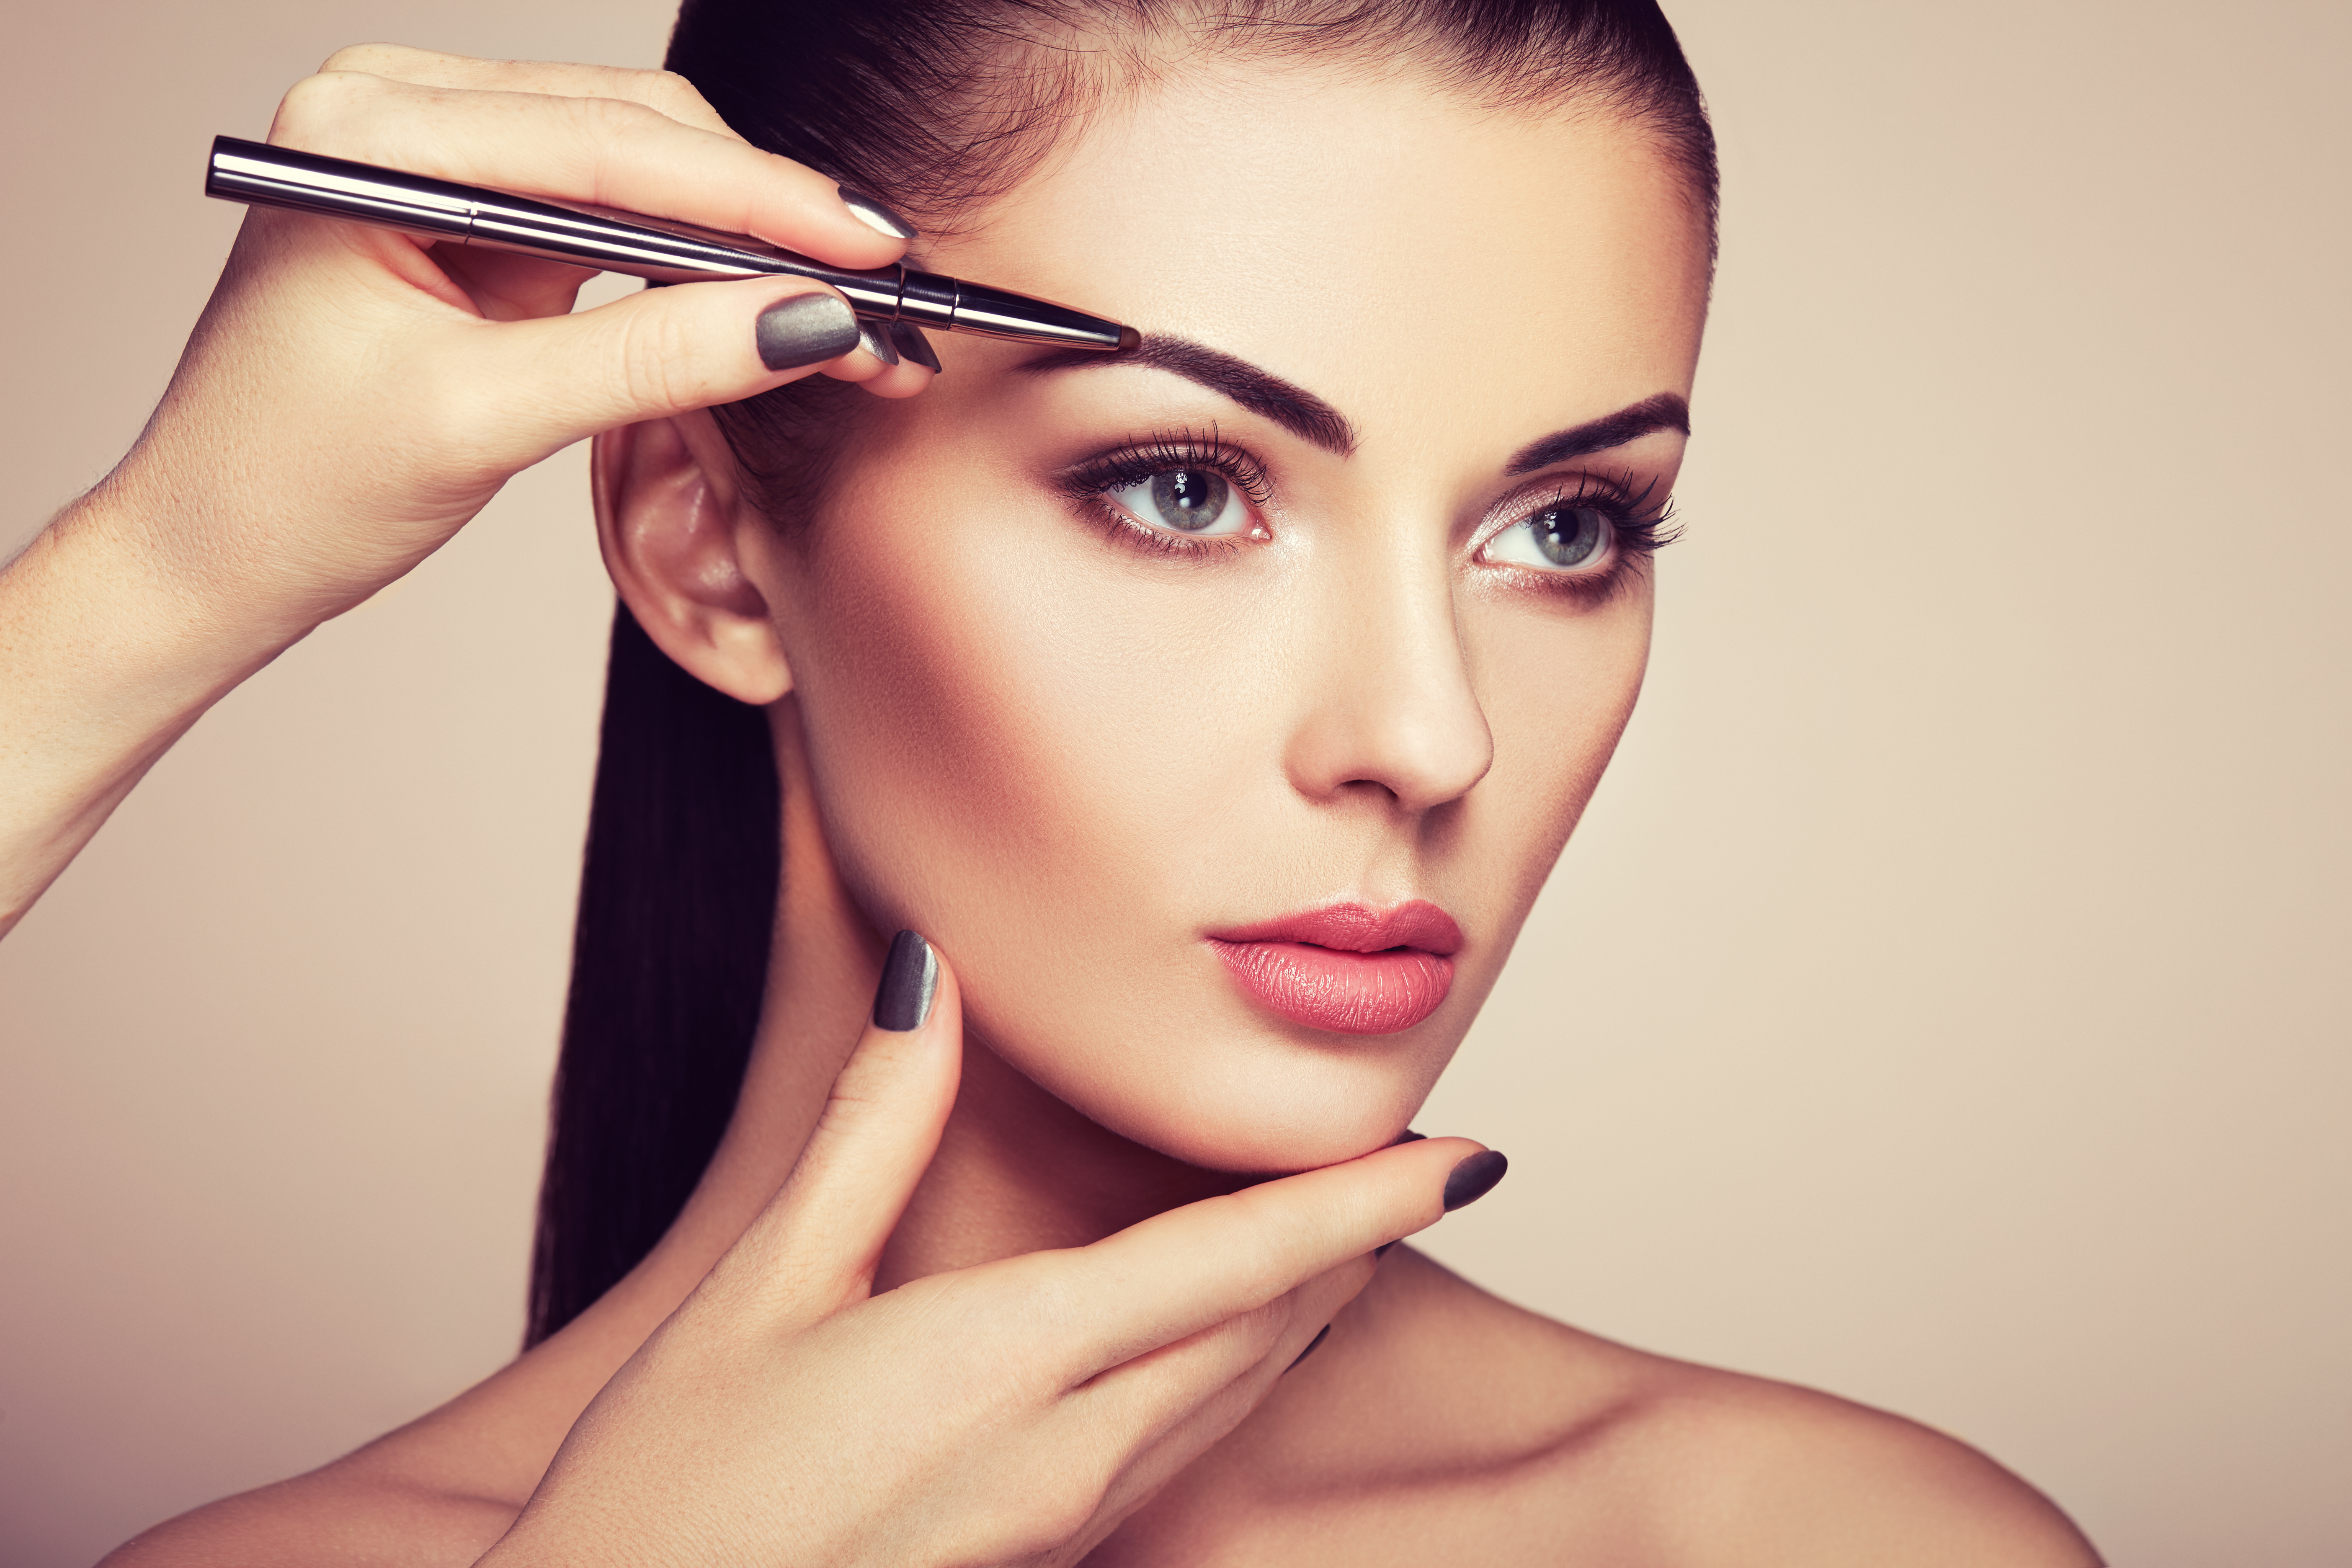 10 - latest beauty trends - eyebrows